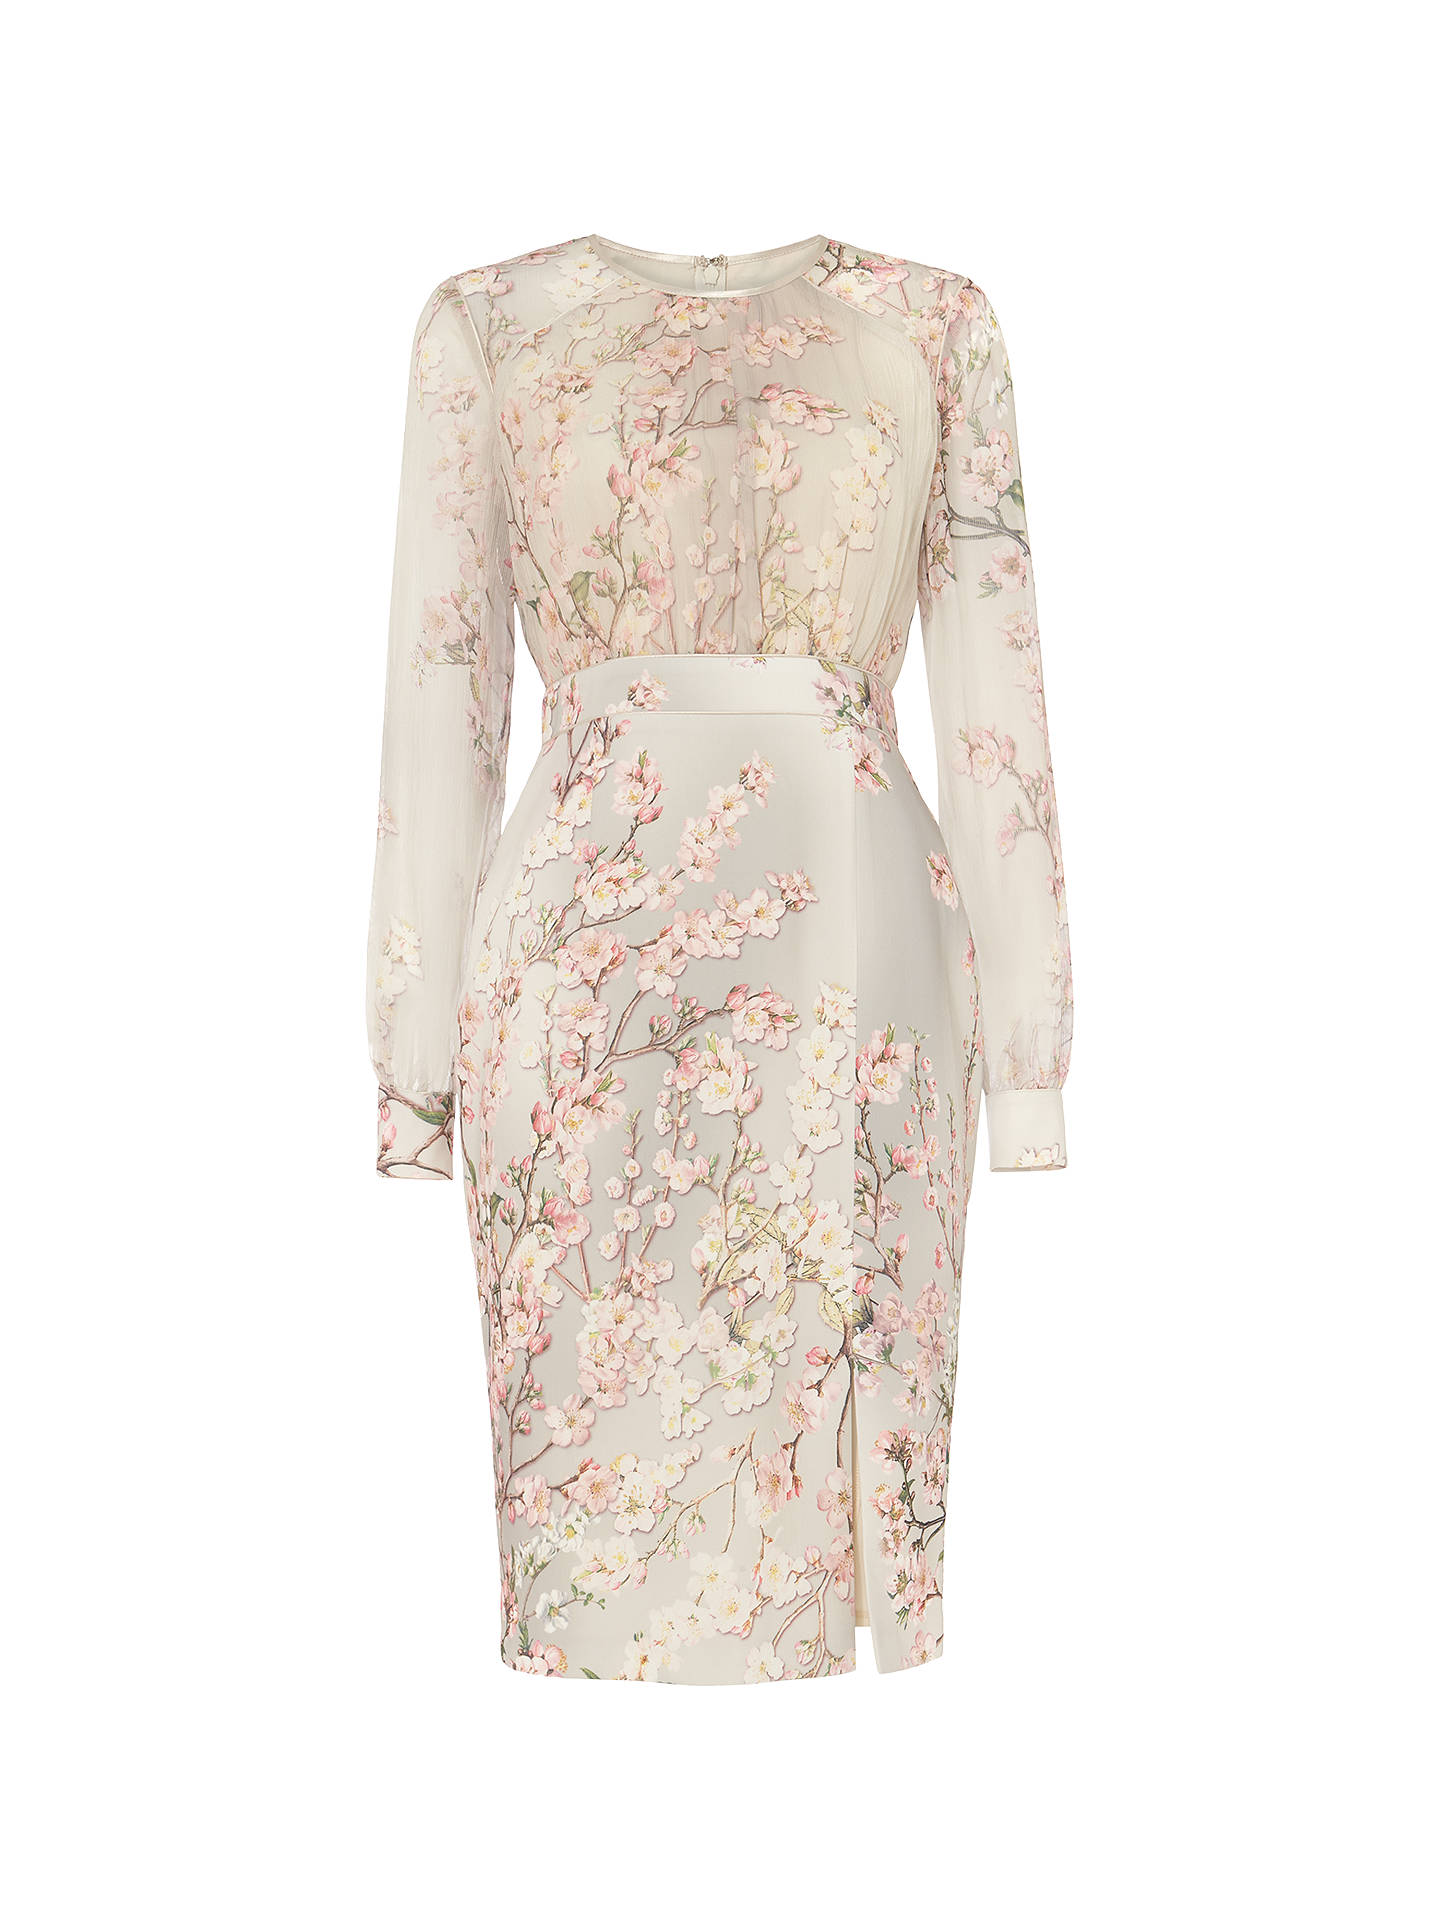 BuyPhase Eight Nissa Floral Print Dress, Cream Buttermilk/Multi, 10 Online at johnlewis.com